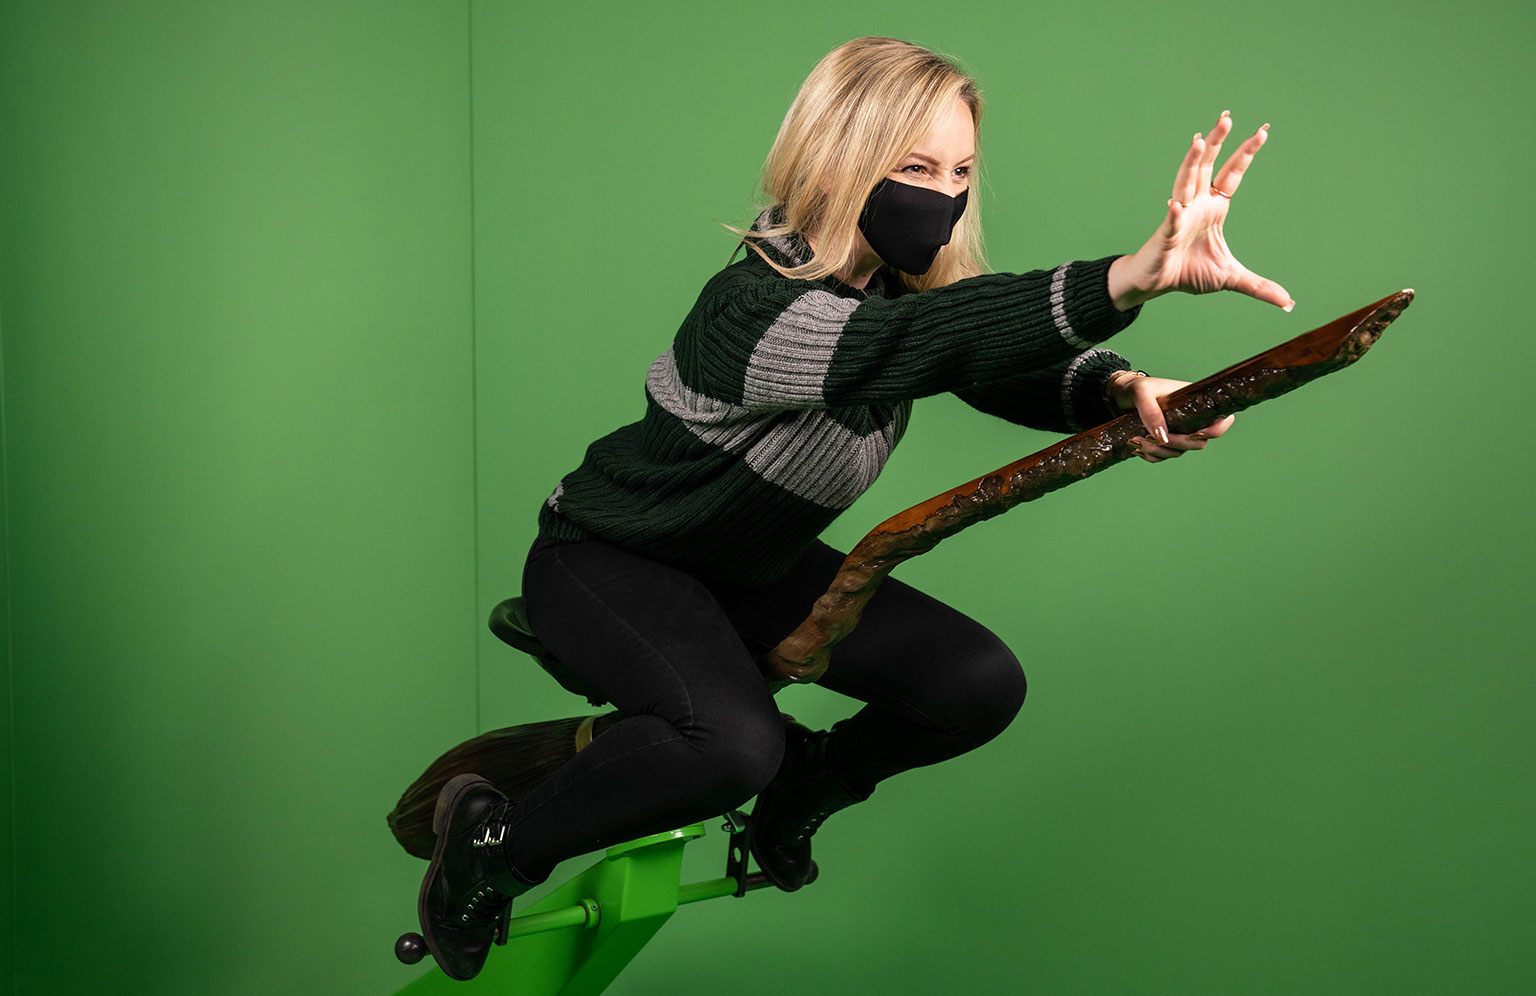 The Harry Potter Photographic Exhibition - Green screen broomstick photo opportunity